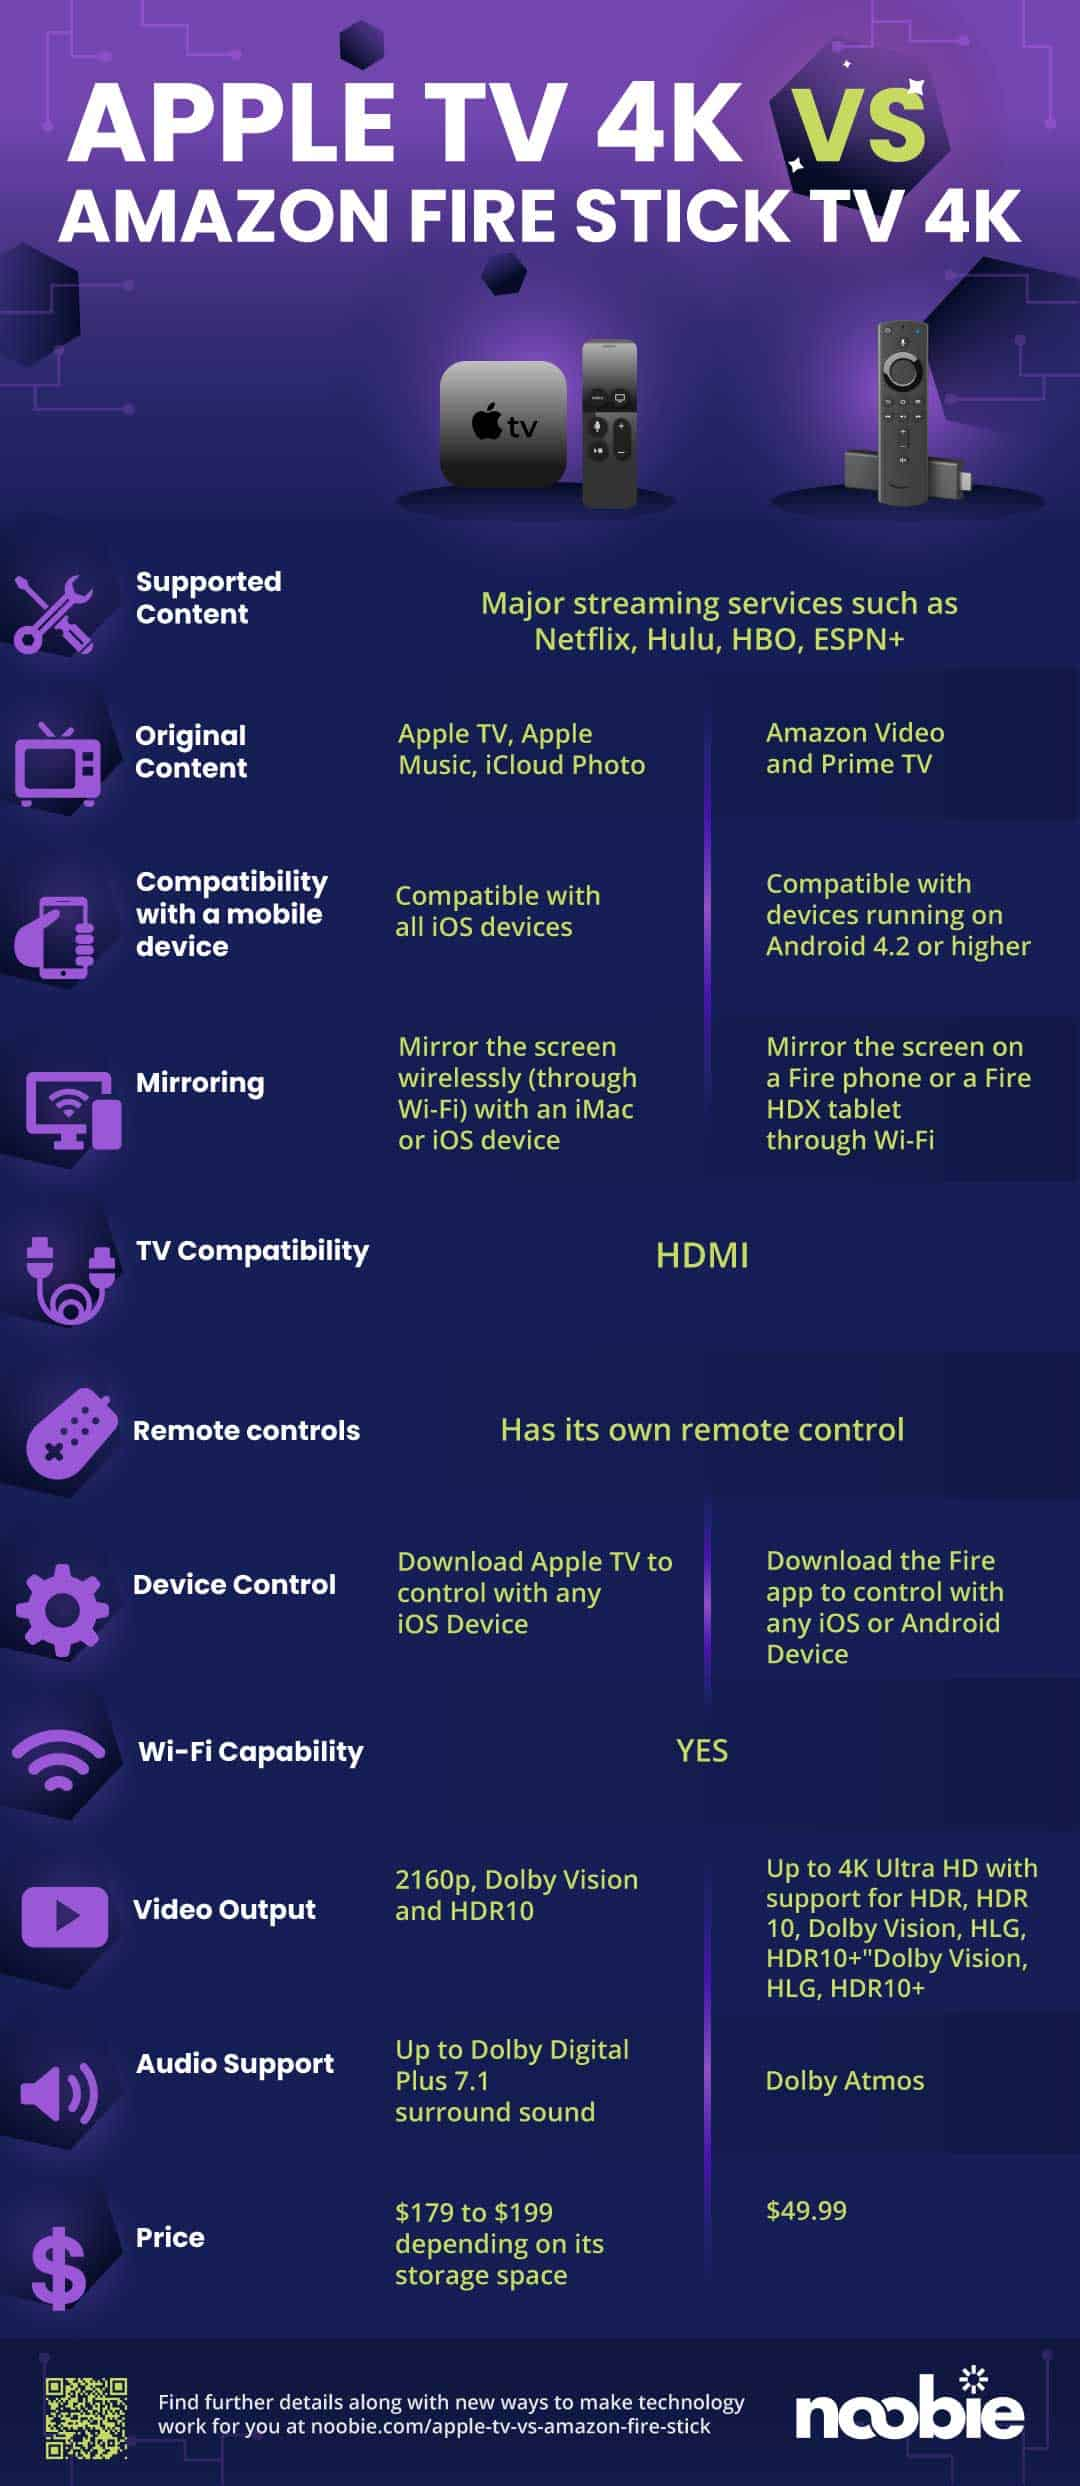 Apple TV vs Amazon Fire Stick, Which One Should I Get? [INFOGRAPHIC]